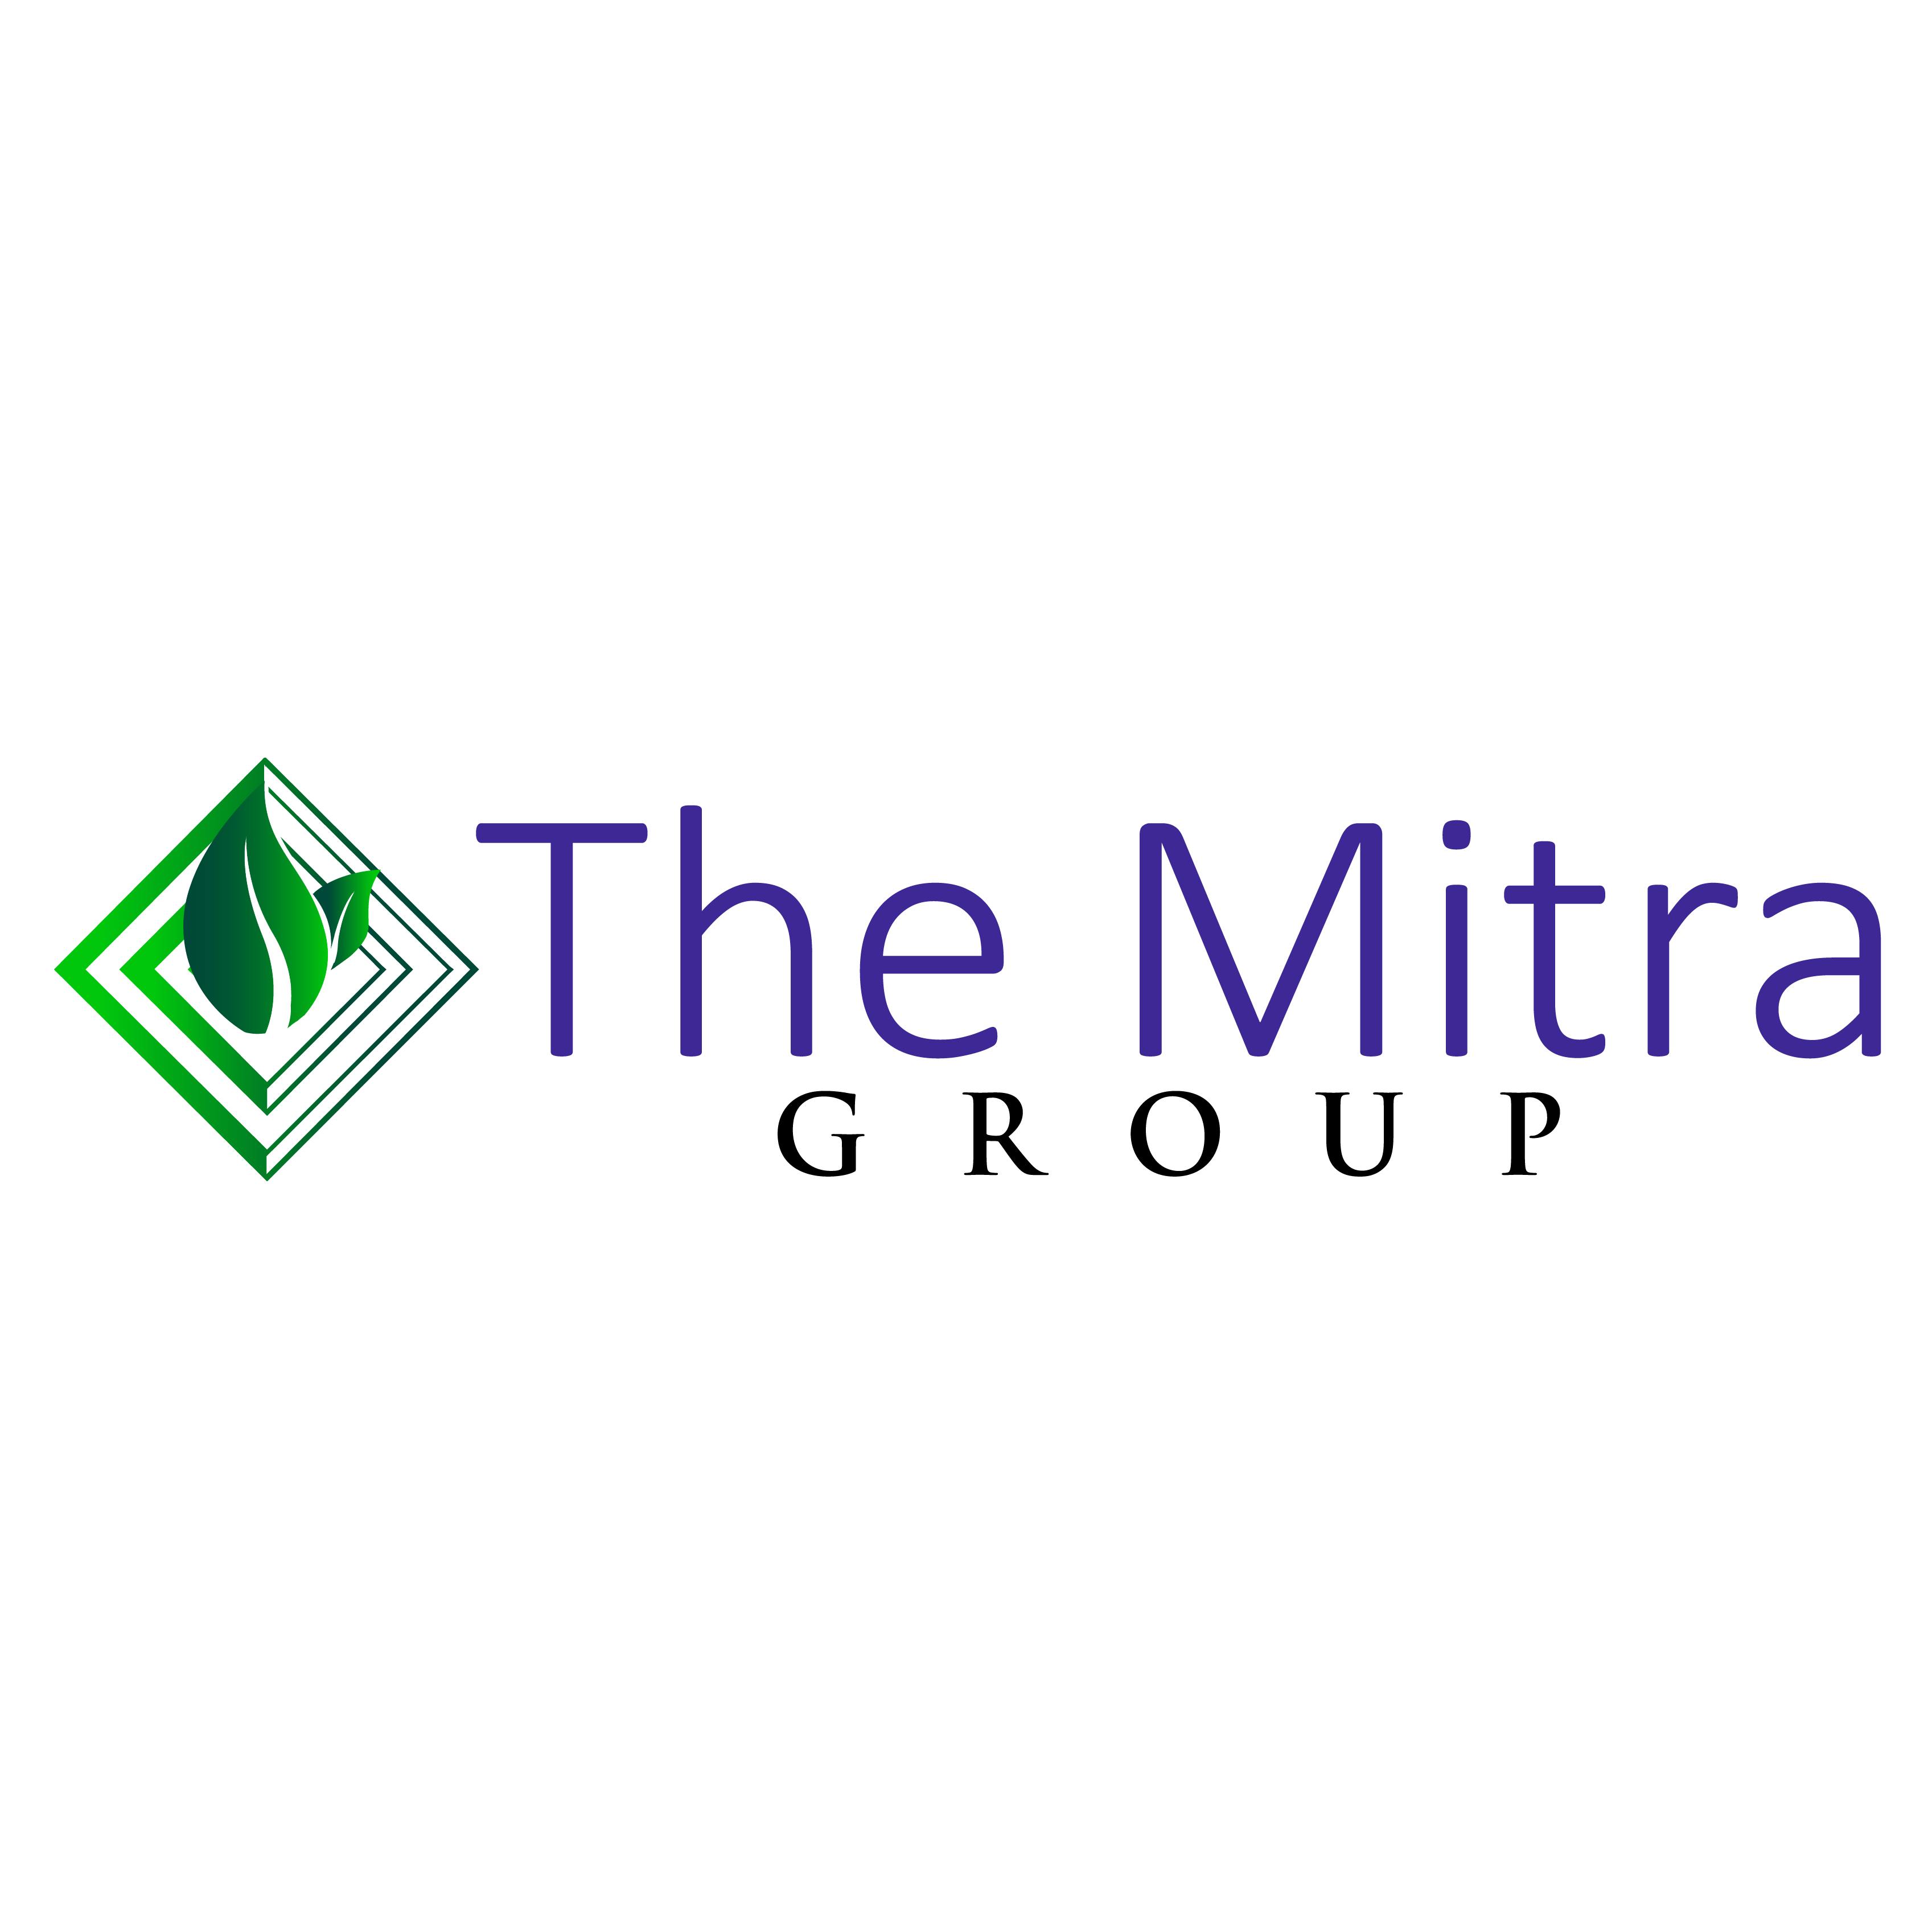 The Mitra Group